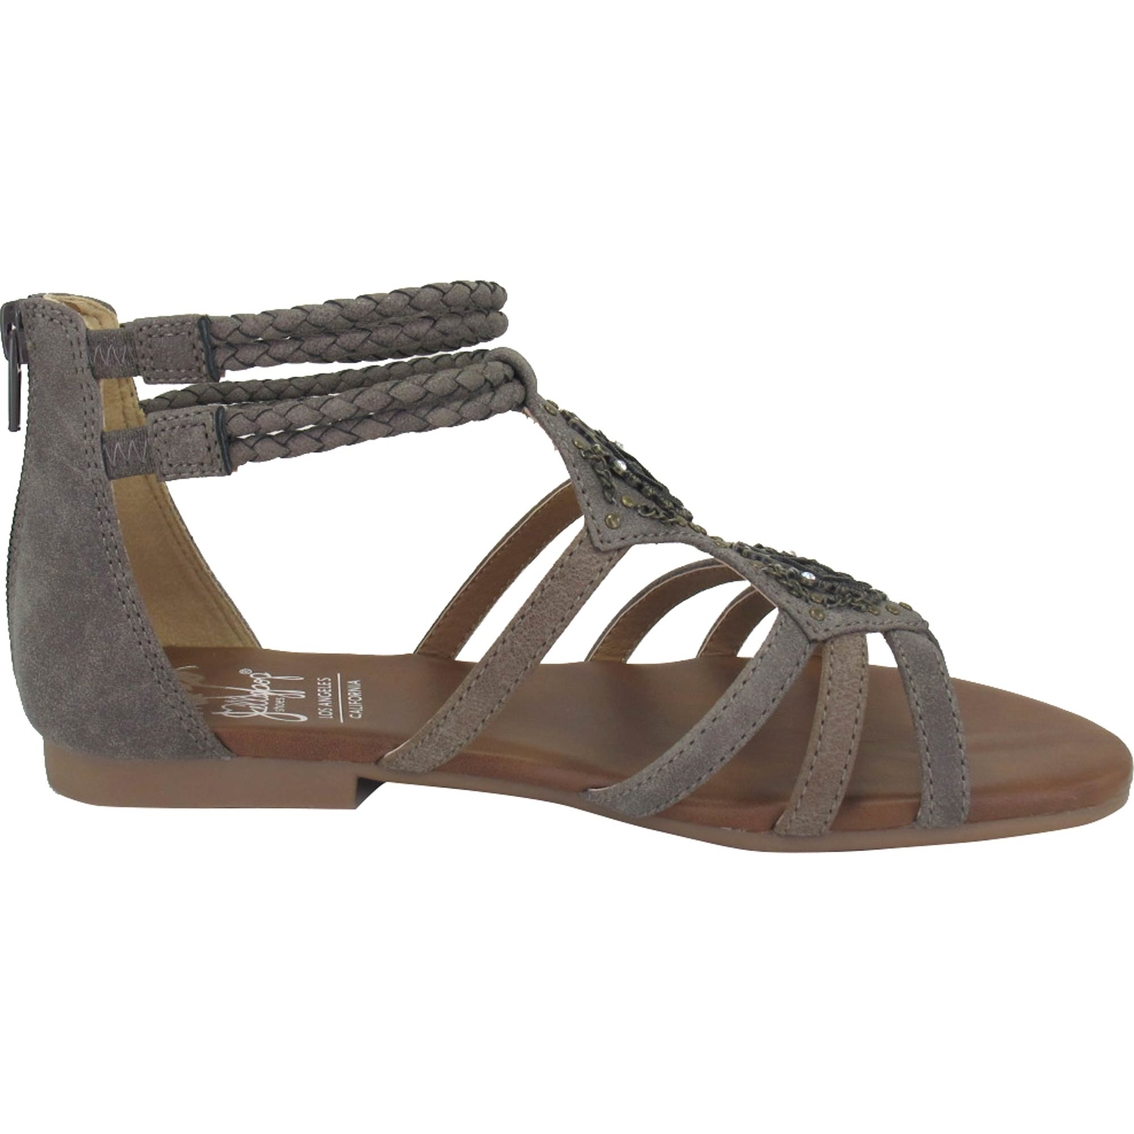 190d9c986e3 Jellypop Inza Gladiator Sandals